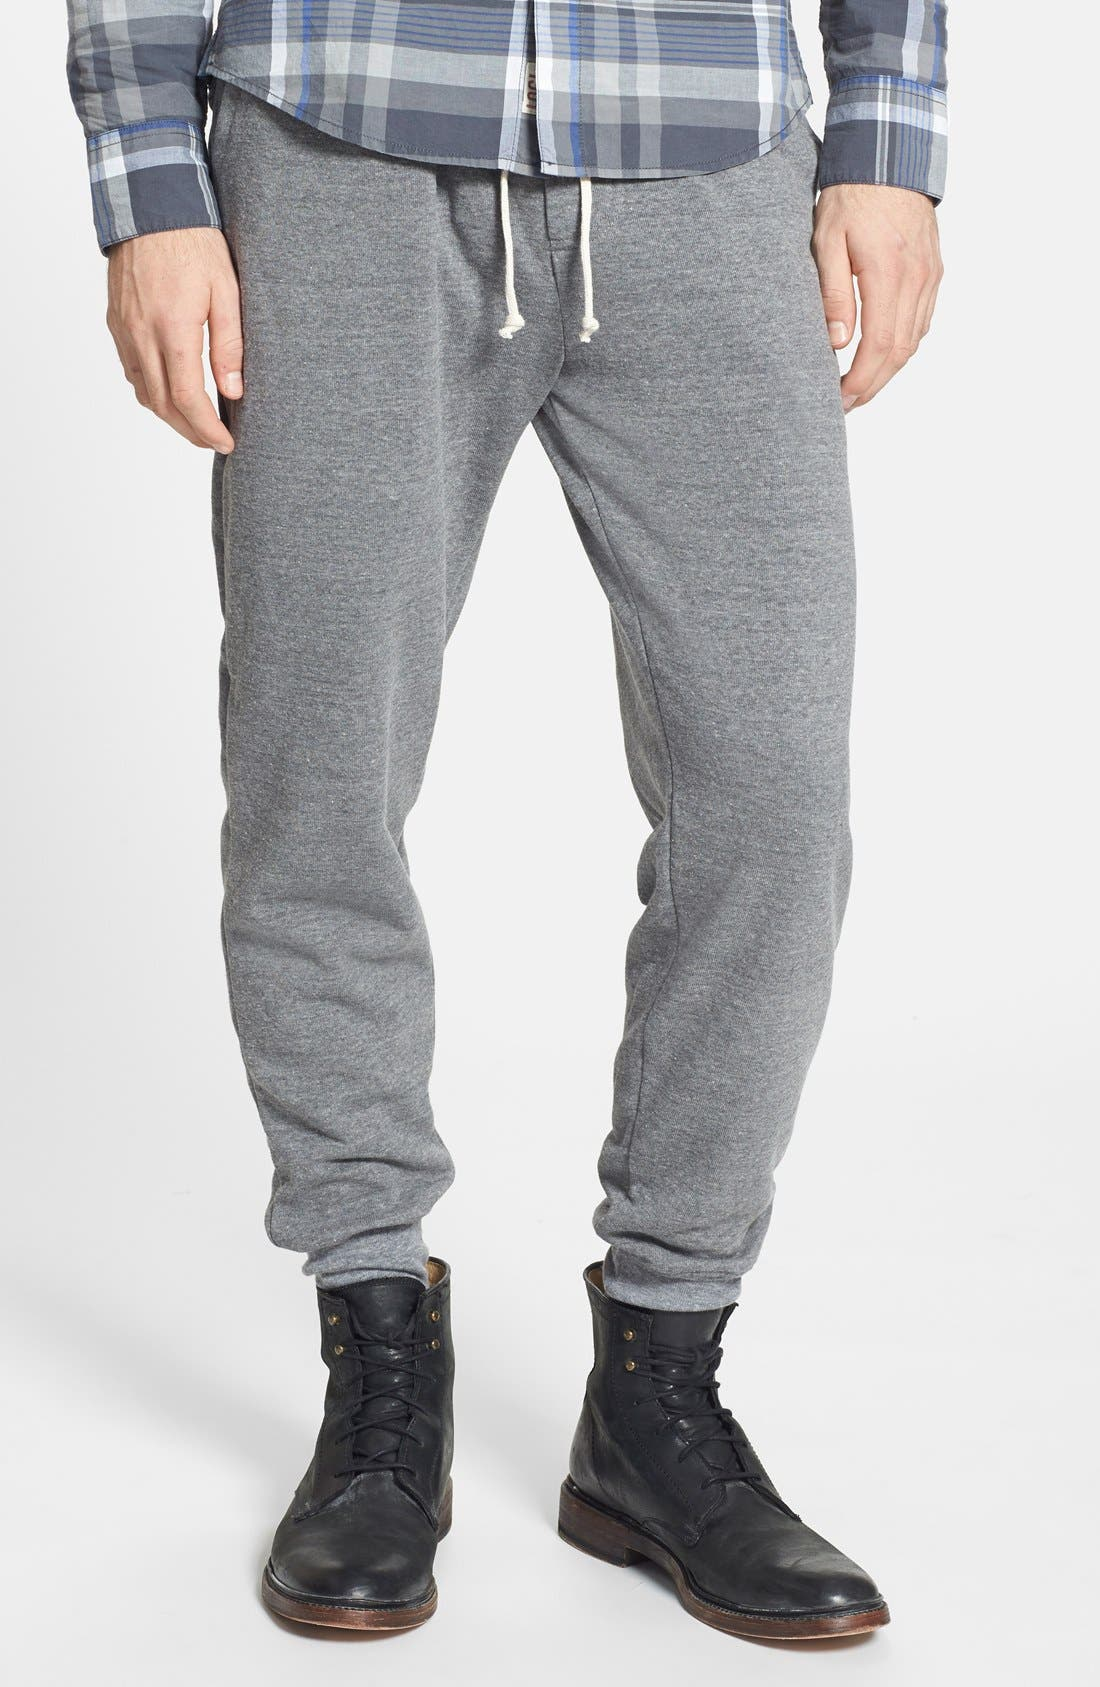 'Dodgeball' Eco Fleece Sweatpants,                             Main thumbnail 1, color,                             Grey